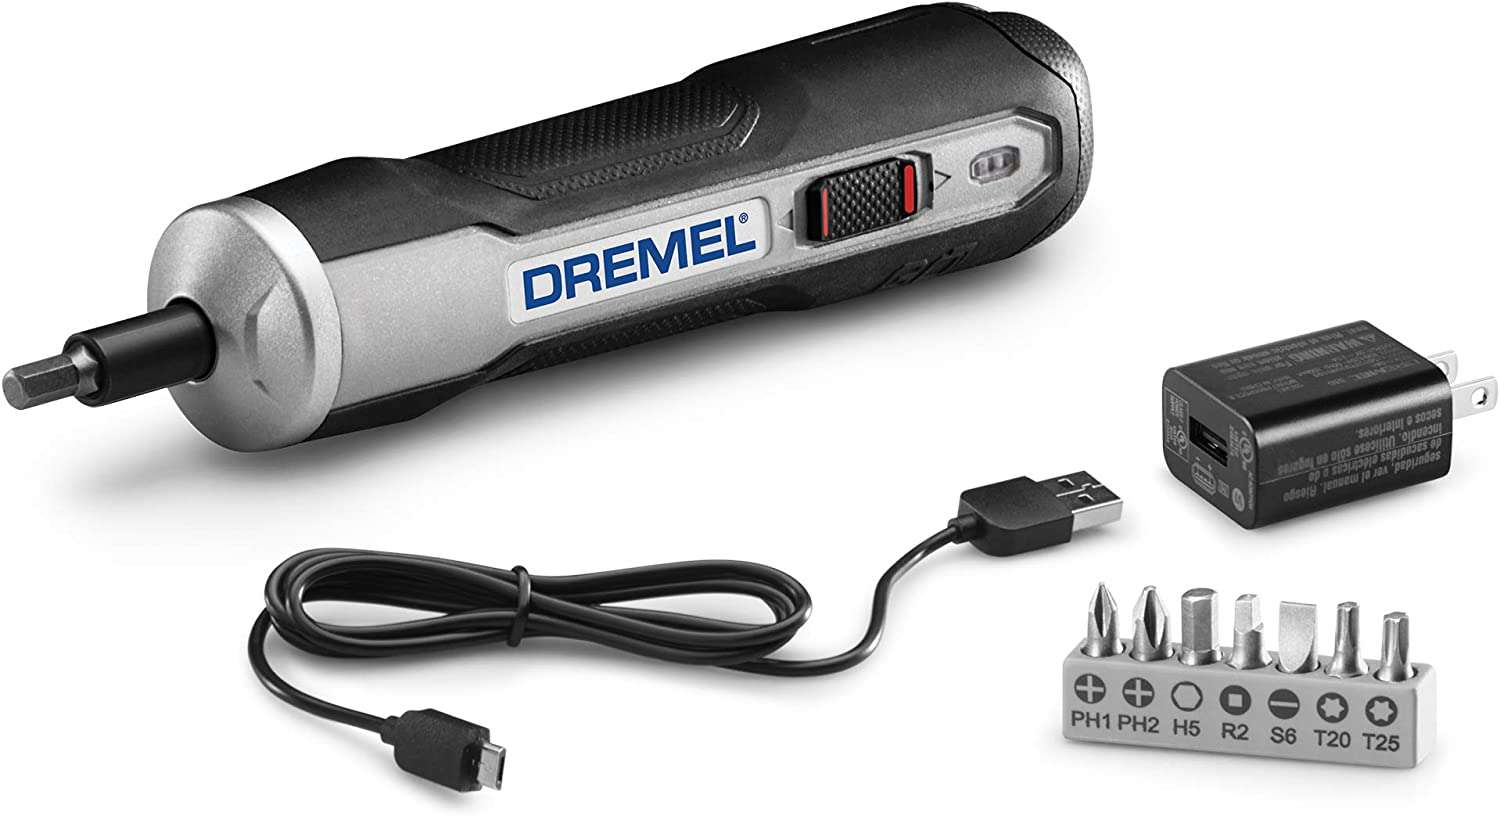 Dremel GO-01 Powered Cordless Electric Screwdriver Set-7 Bits with Phillips, Flat, Hex Head- Precise Screw Driver That Is Automatic, Small, Portable – Integrated Rechargeable Battery with USB